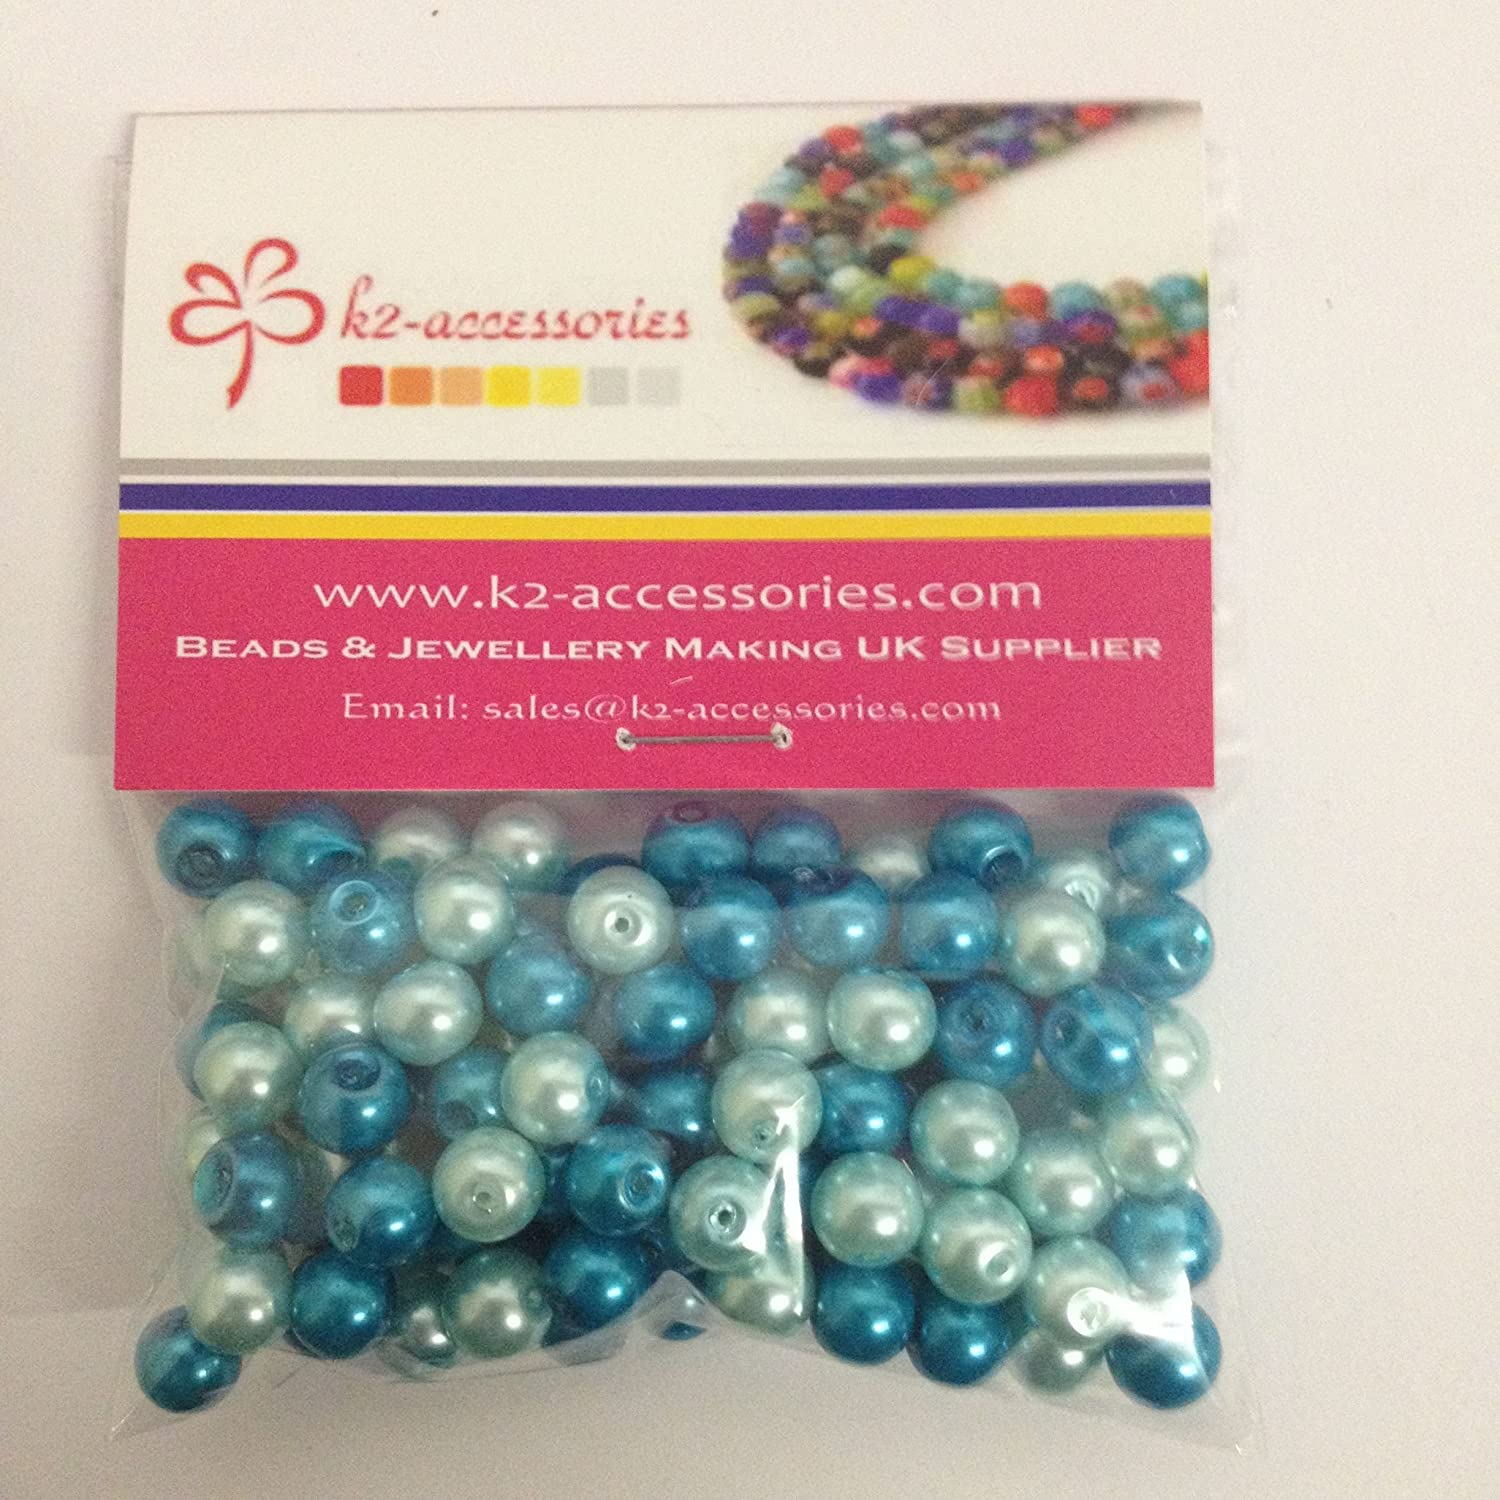 100 pieces 8mm Glass Pearl Beads - Blue Mix - A1030 k2-accessories